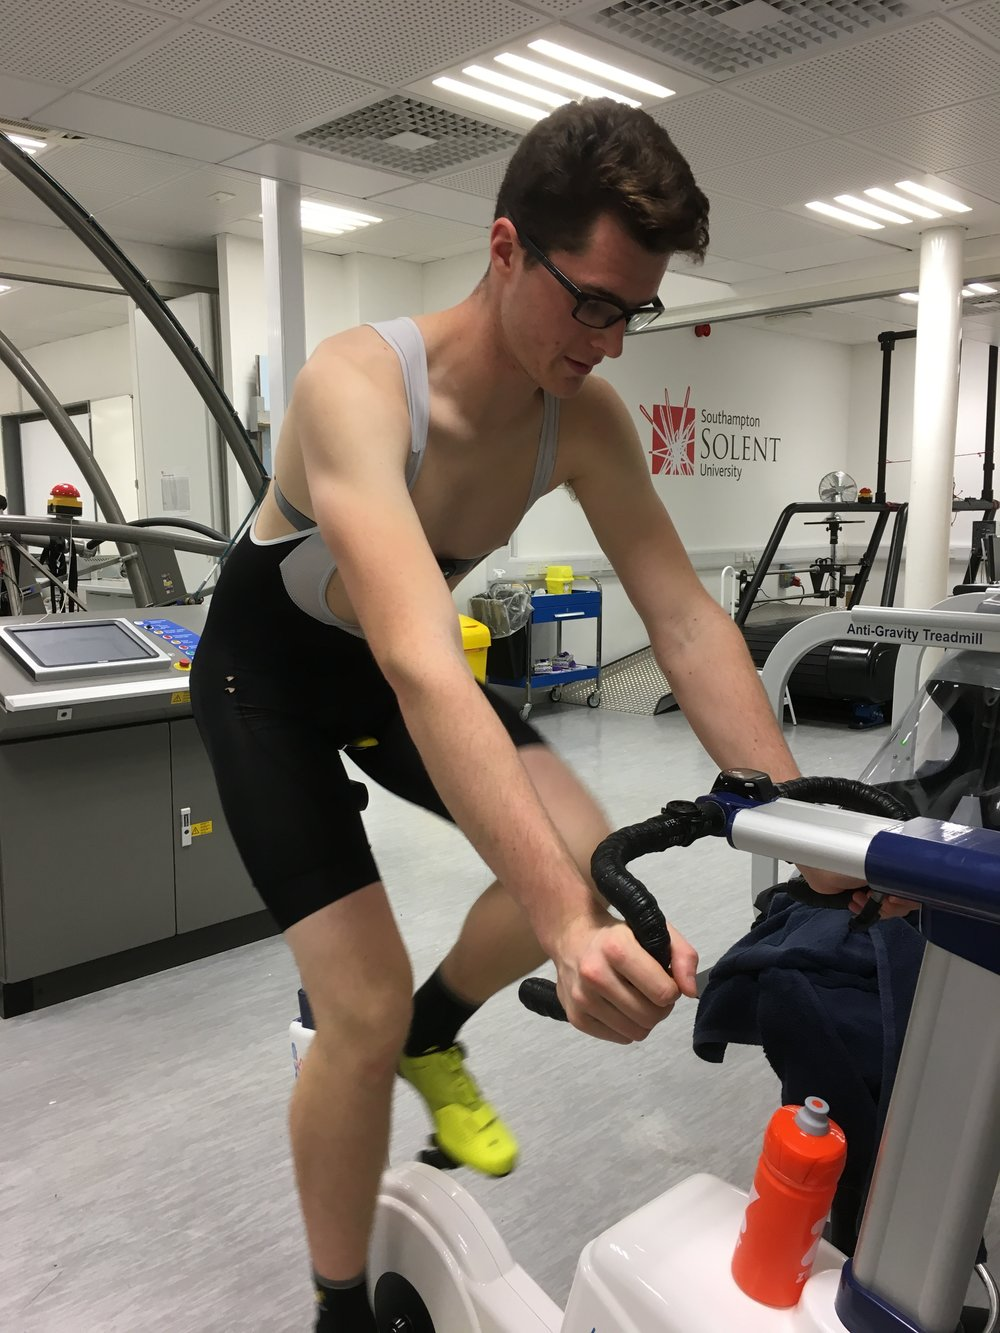 Ryan Kimber - Level 2 Gym InstructorApplied Sports ScientistRyan has worked in the sports industry for a number of years, most recently specialising in several large bike shops providing knowledge and advice to cyclists of all abilities.Ryan is studying Applied Sports Science at Southampton Solent University to develop his passion for exercise physiology and human performance. His studies involve working within the high-performance academy to provide a wide range of testing protocols and interventions to the highest calibre University and GB athletes.Looking to the future, Ryan plans to augment his degree with qualifications in sports massage and personal training.Ryan is keen to share his passion for exercise physiology and happy to share his knowledge within Echelon so please do not hesitate to ask him about it.